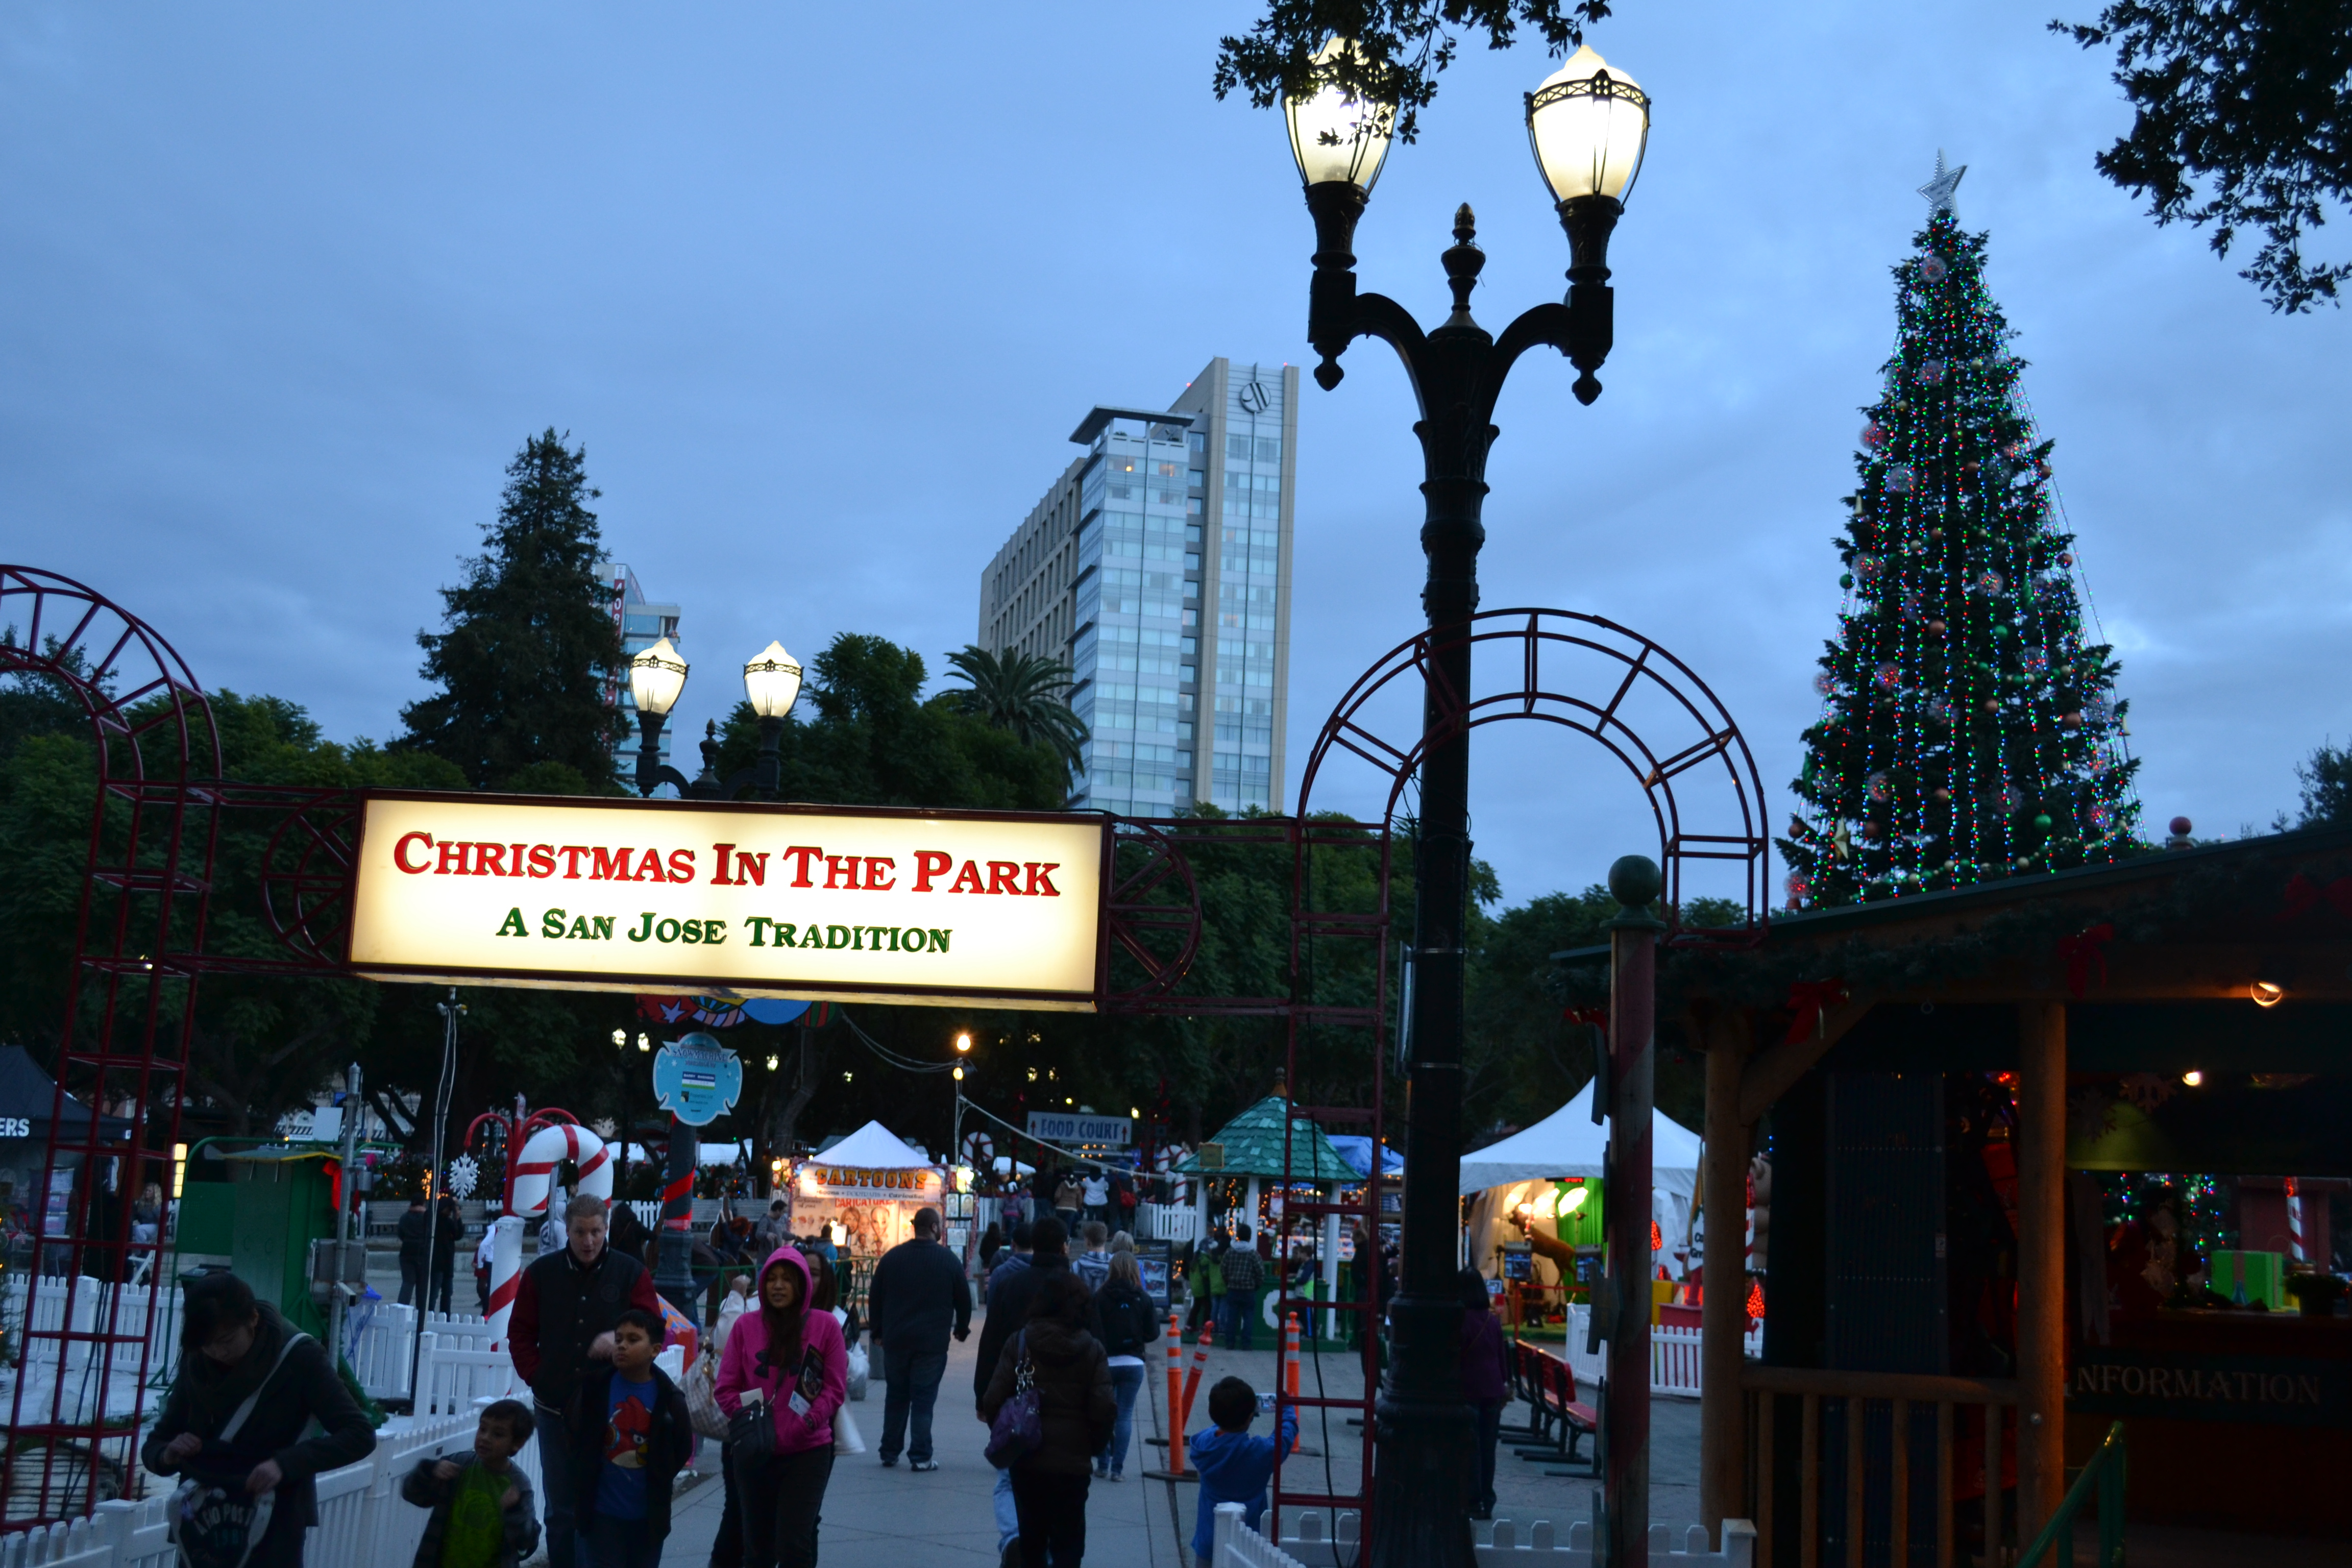 filechristmas in the park exhibit 6jpg - When Does Christmas In The Park Open